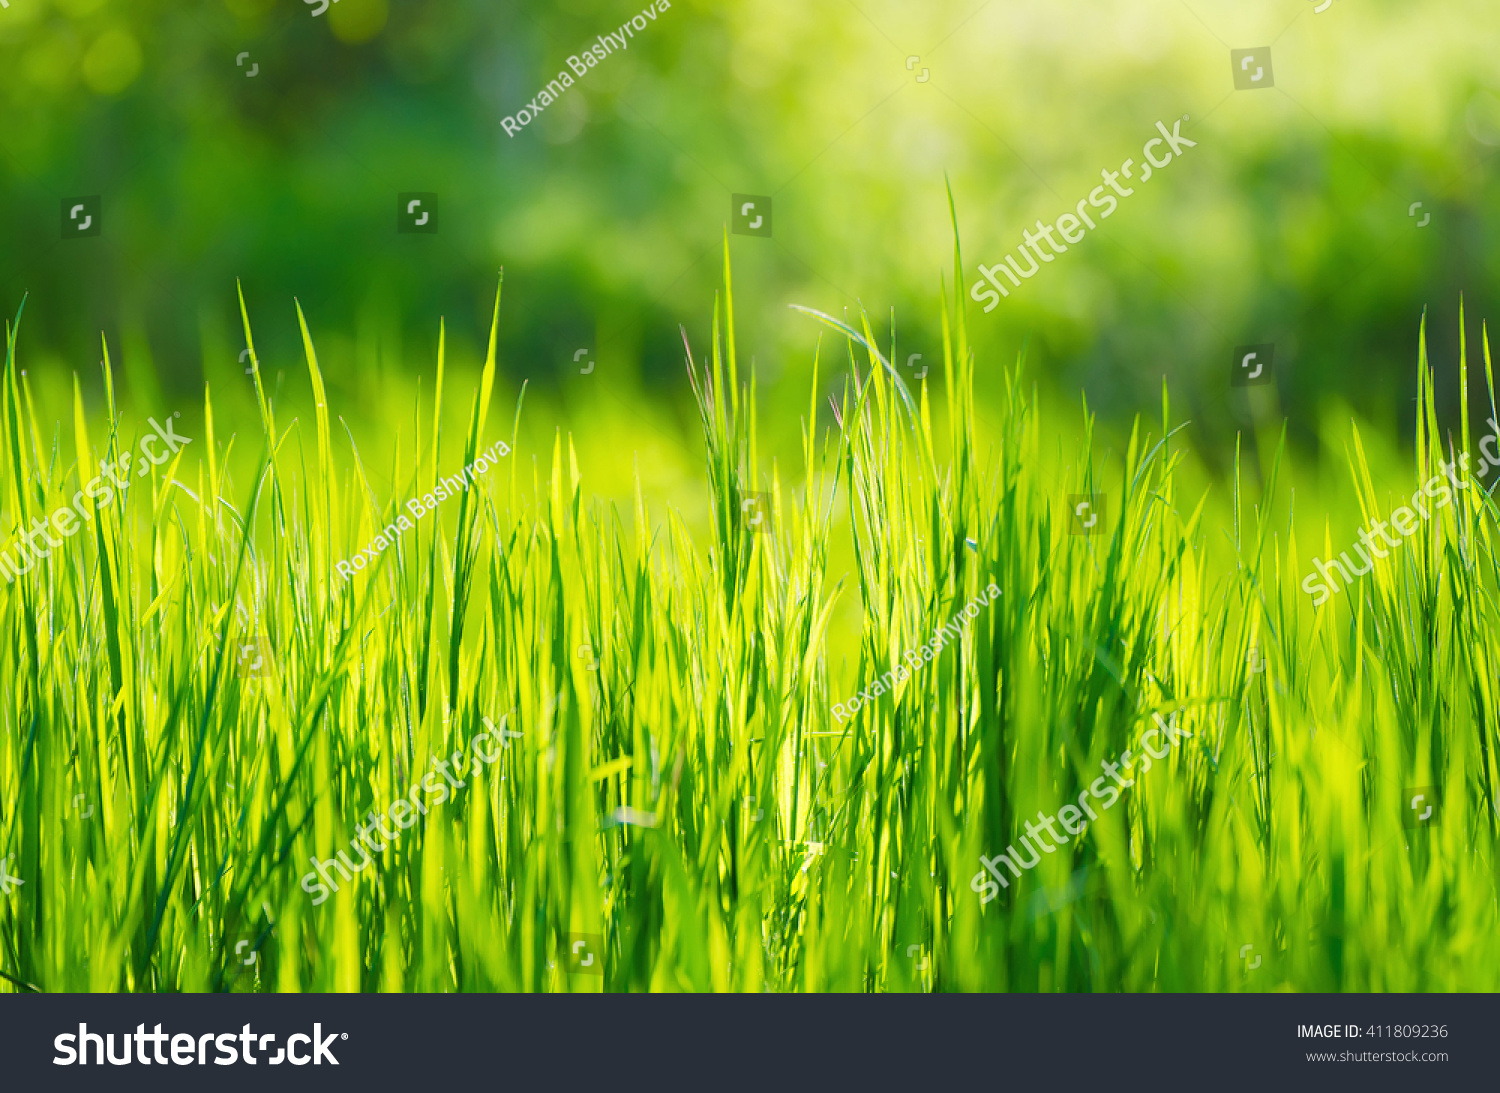 green grass fields suitable backgrounds wallpapers stock photo